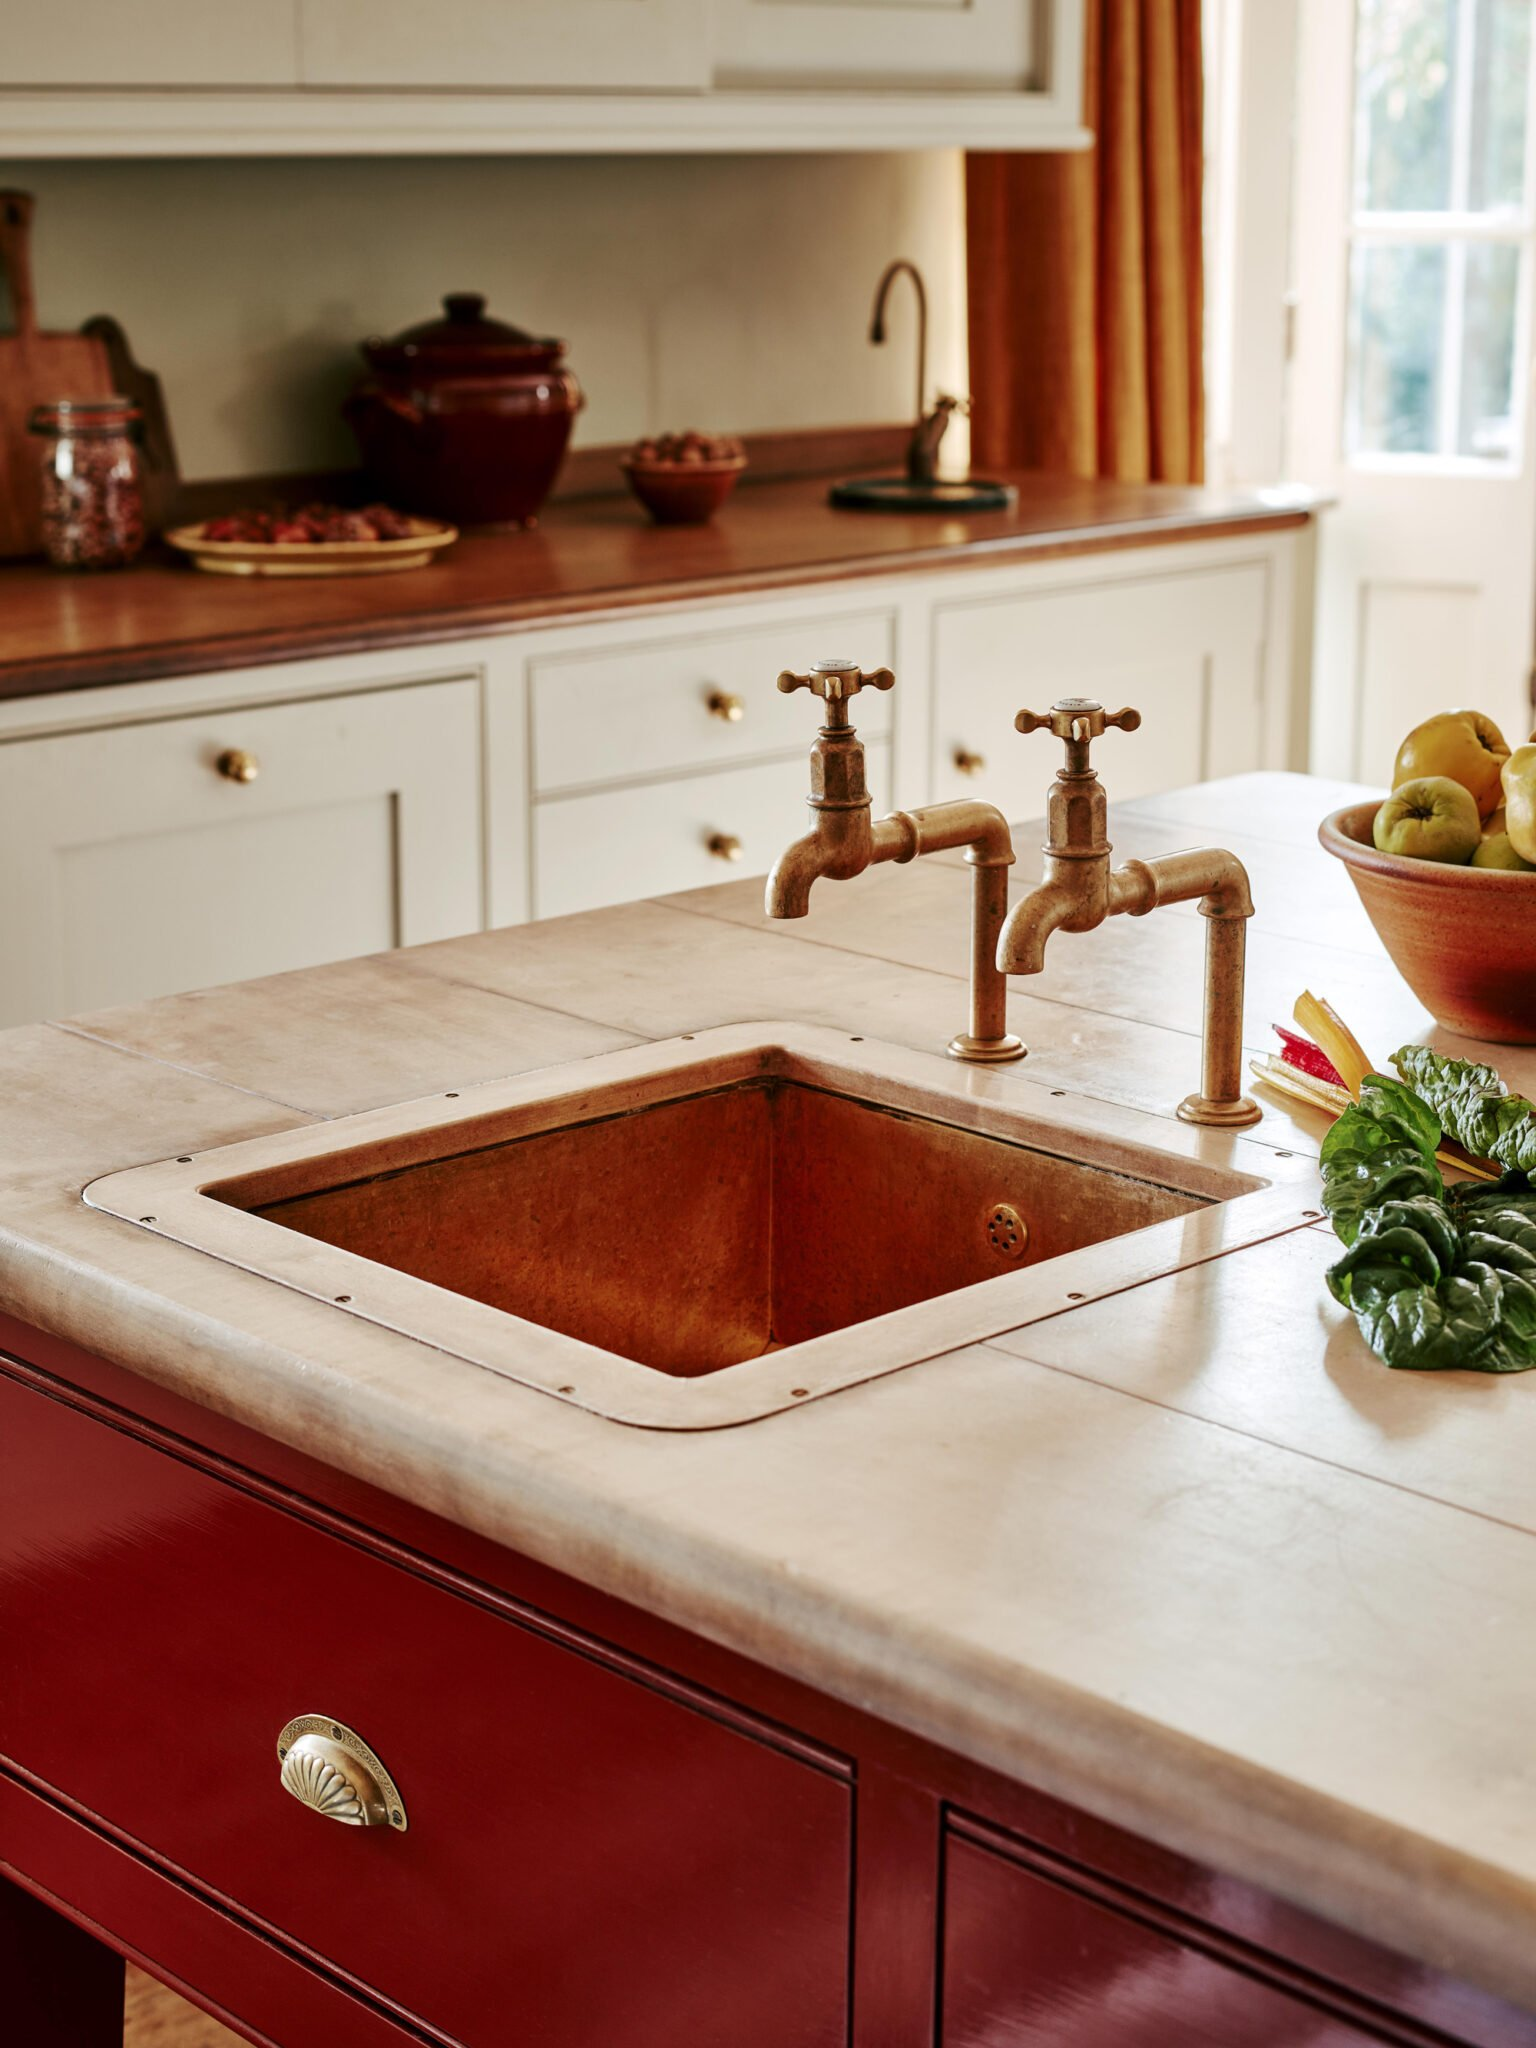 Copper sink with wooden top